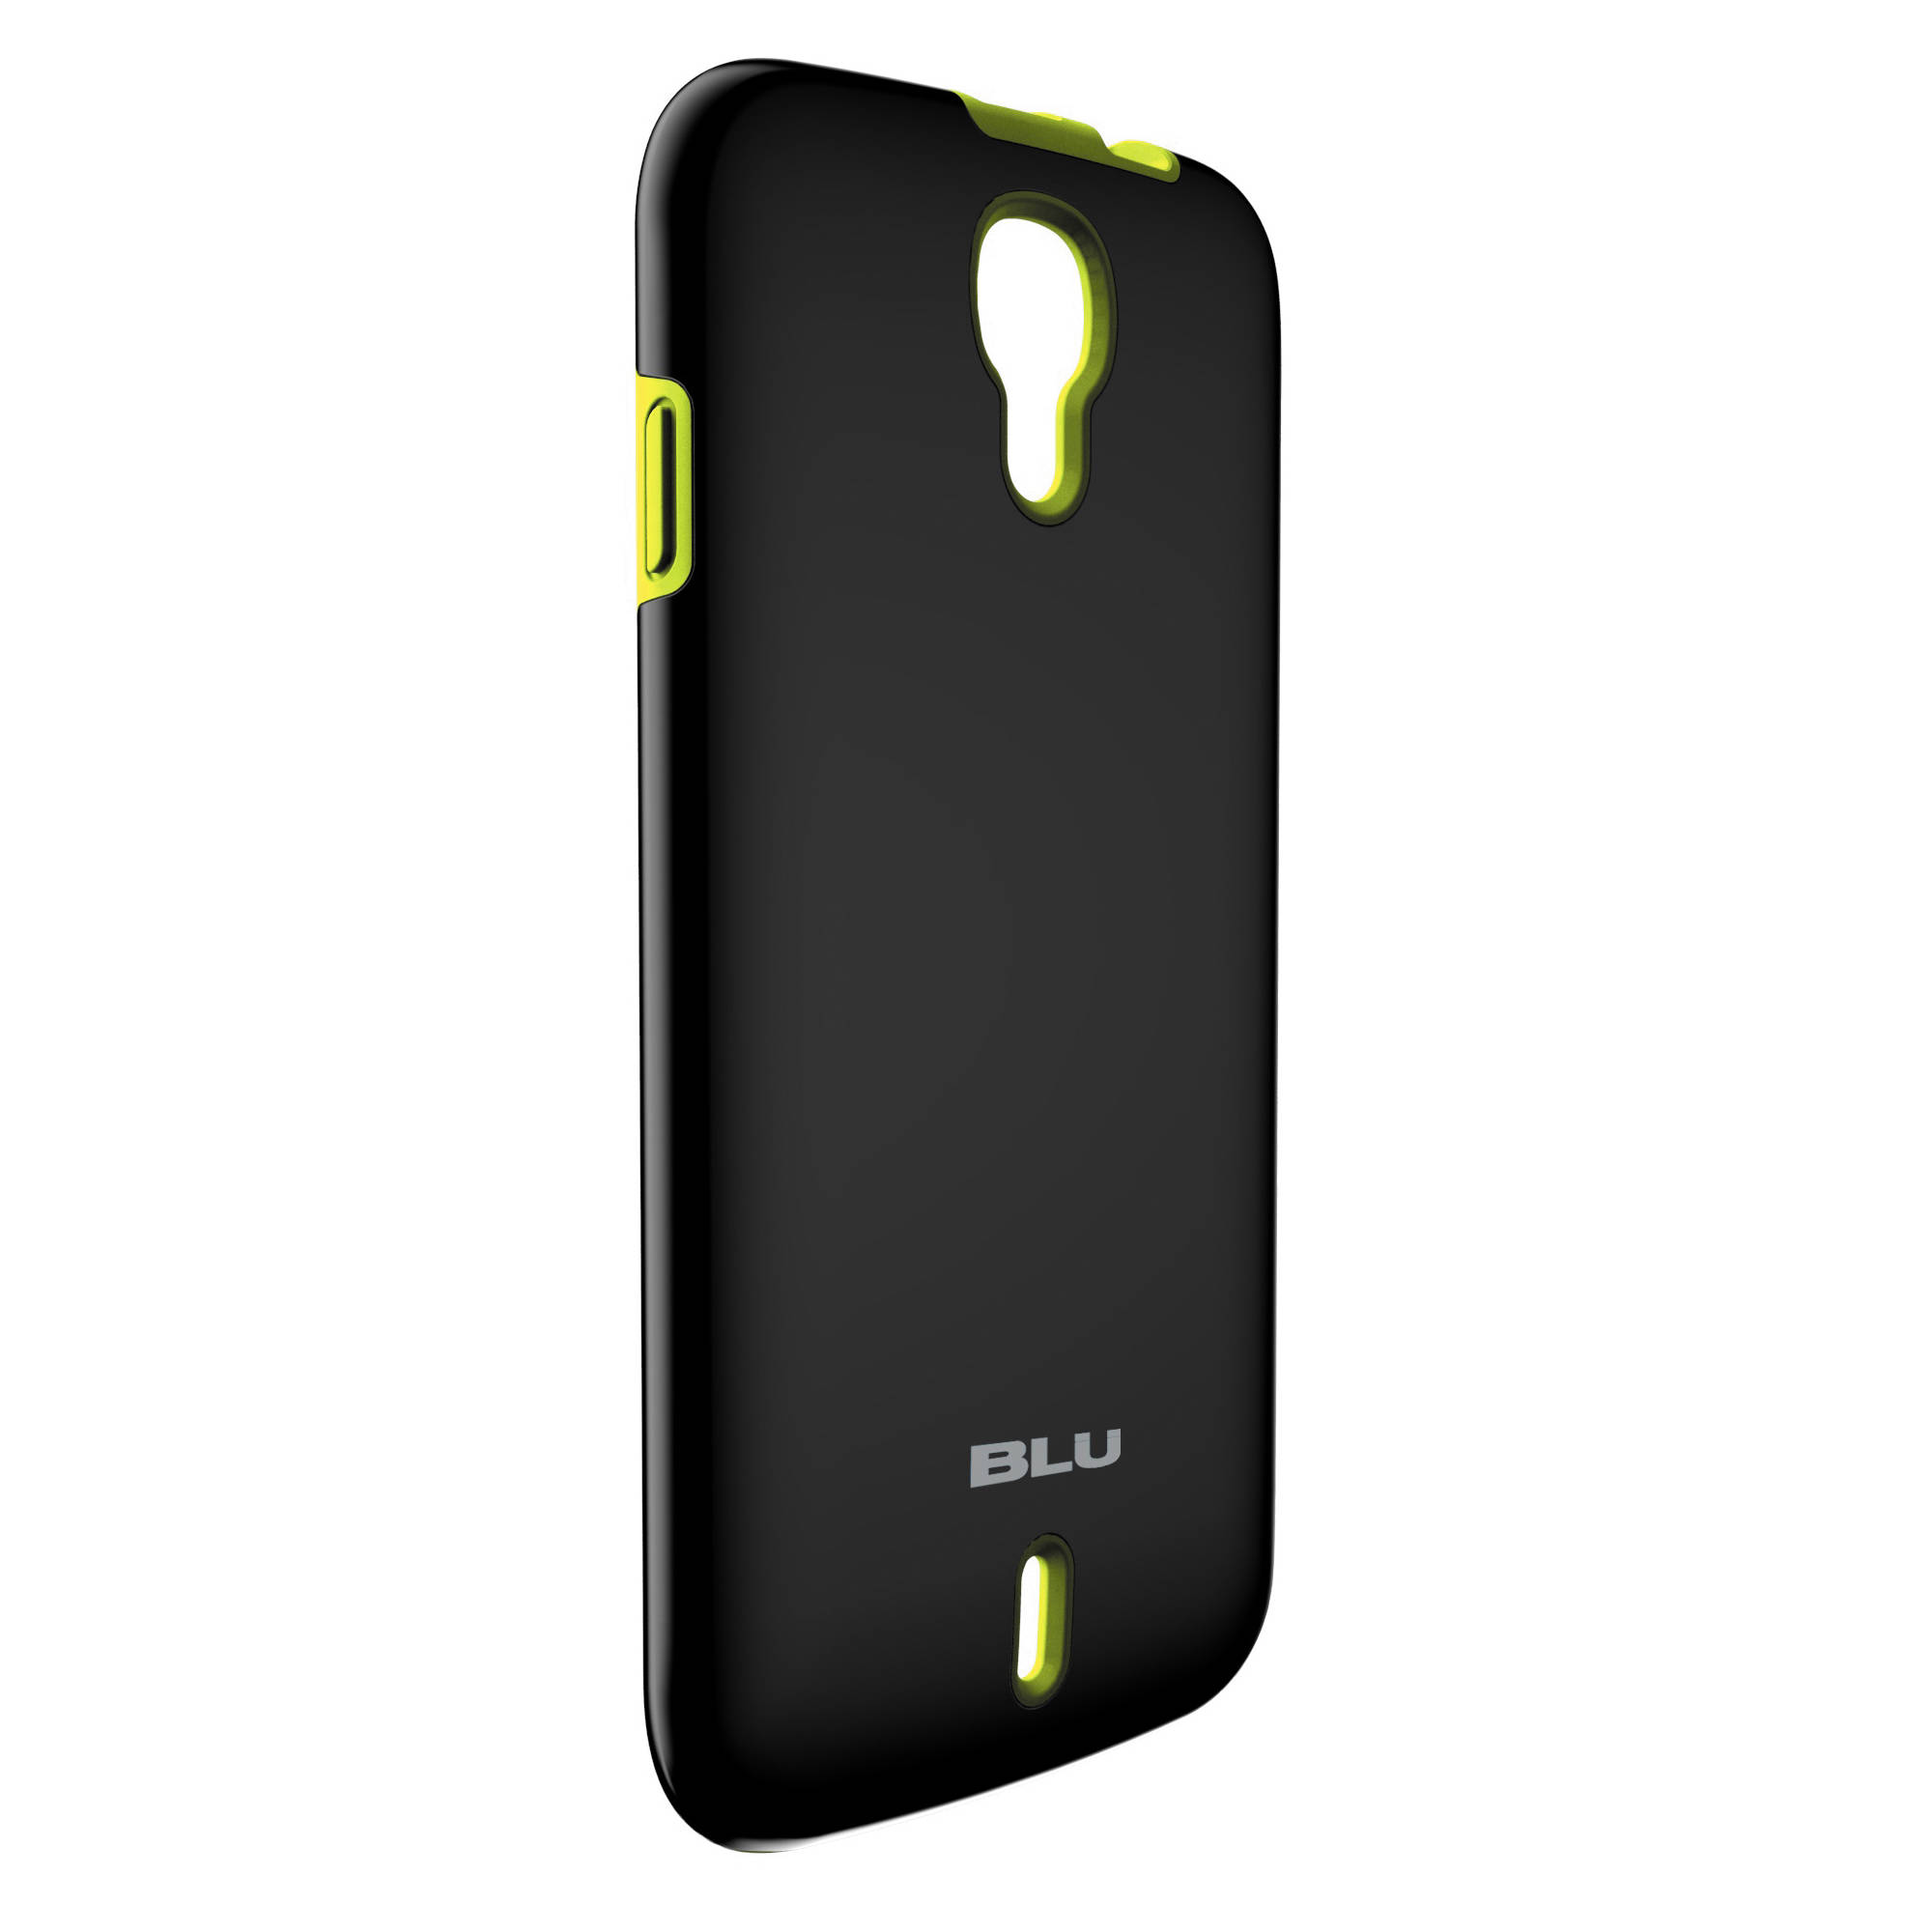 Hd Cell Phone Screen Protectors And Covers, Hd, Wiring Diagram Free ...